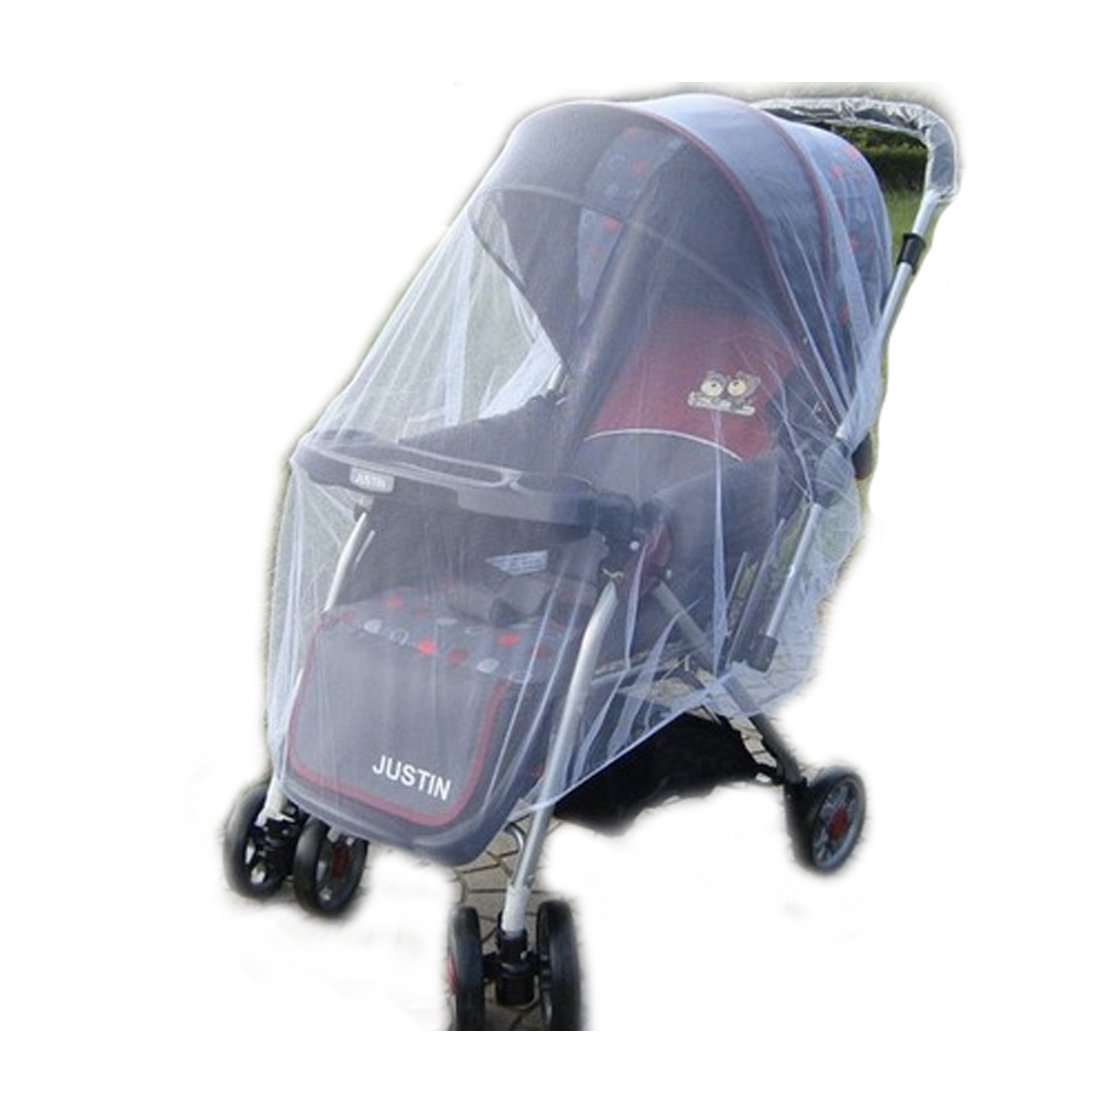 Baby Mosquito Net for Strollers Carriers Car Seats Cradles Cribs Bassinets Playpens Portable Durable Insect Netting Provides Protection Bed Carriage Insect Bee Bug Net Carrycots Pushchairs Prams Neal LINK 160314051